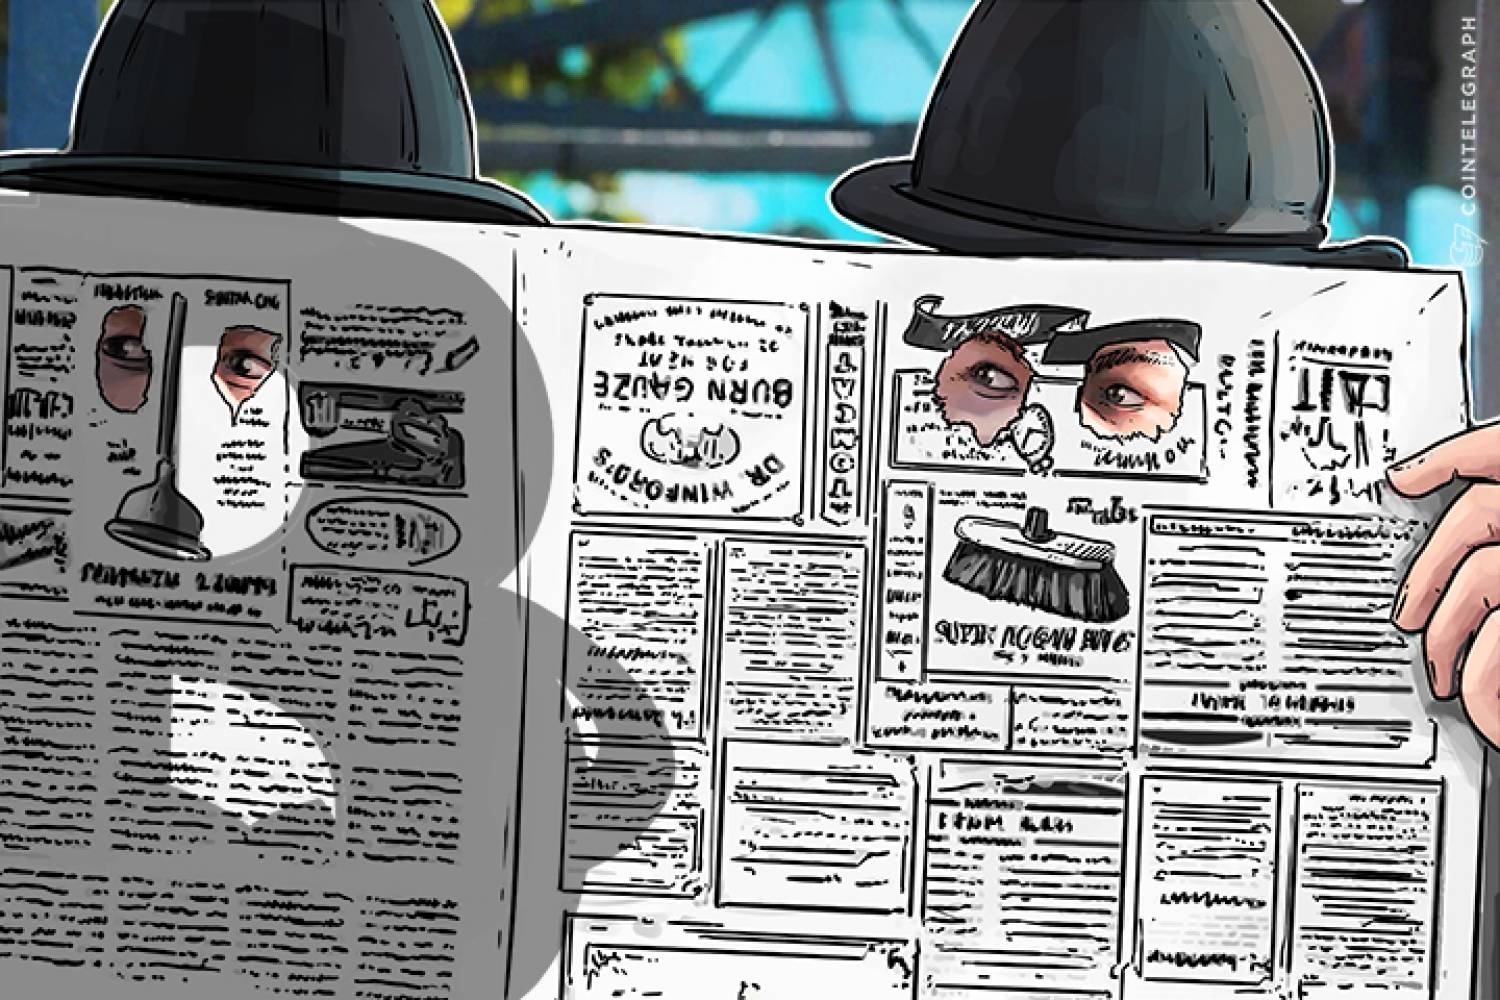 Two men looking through a newspaper